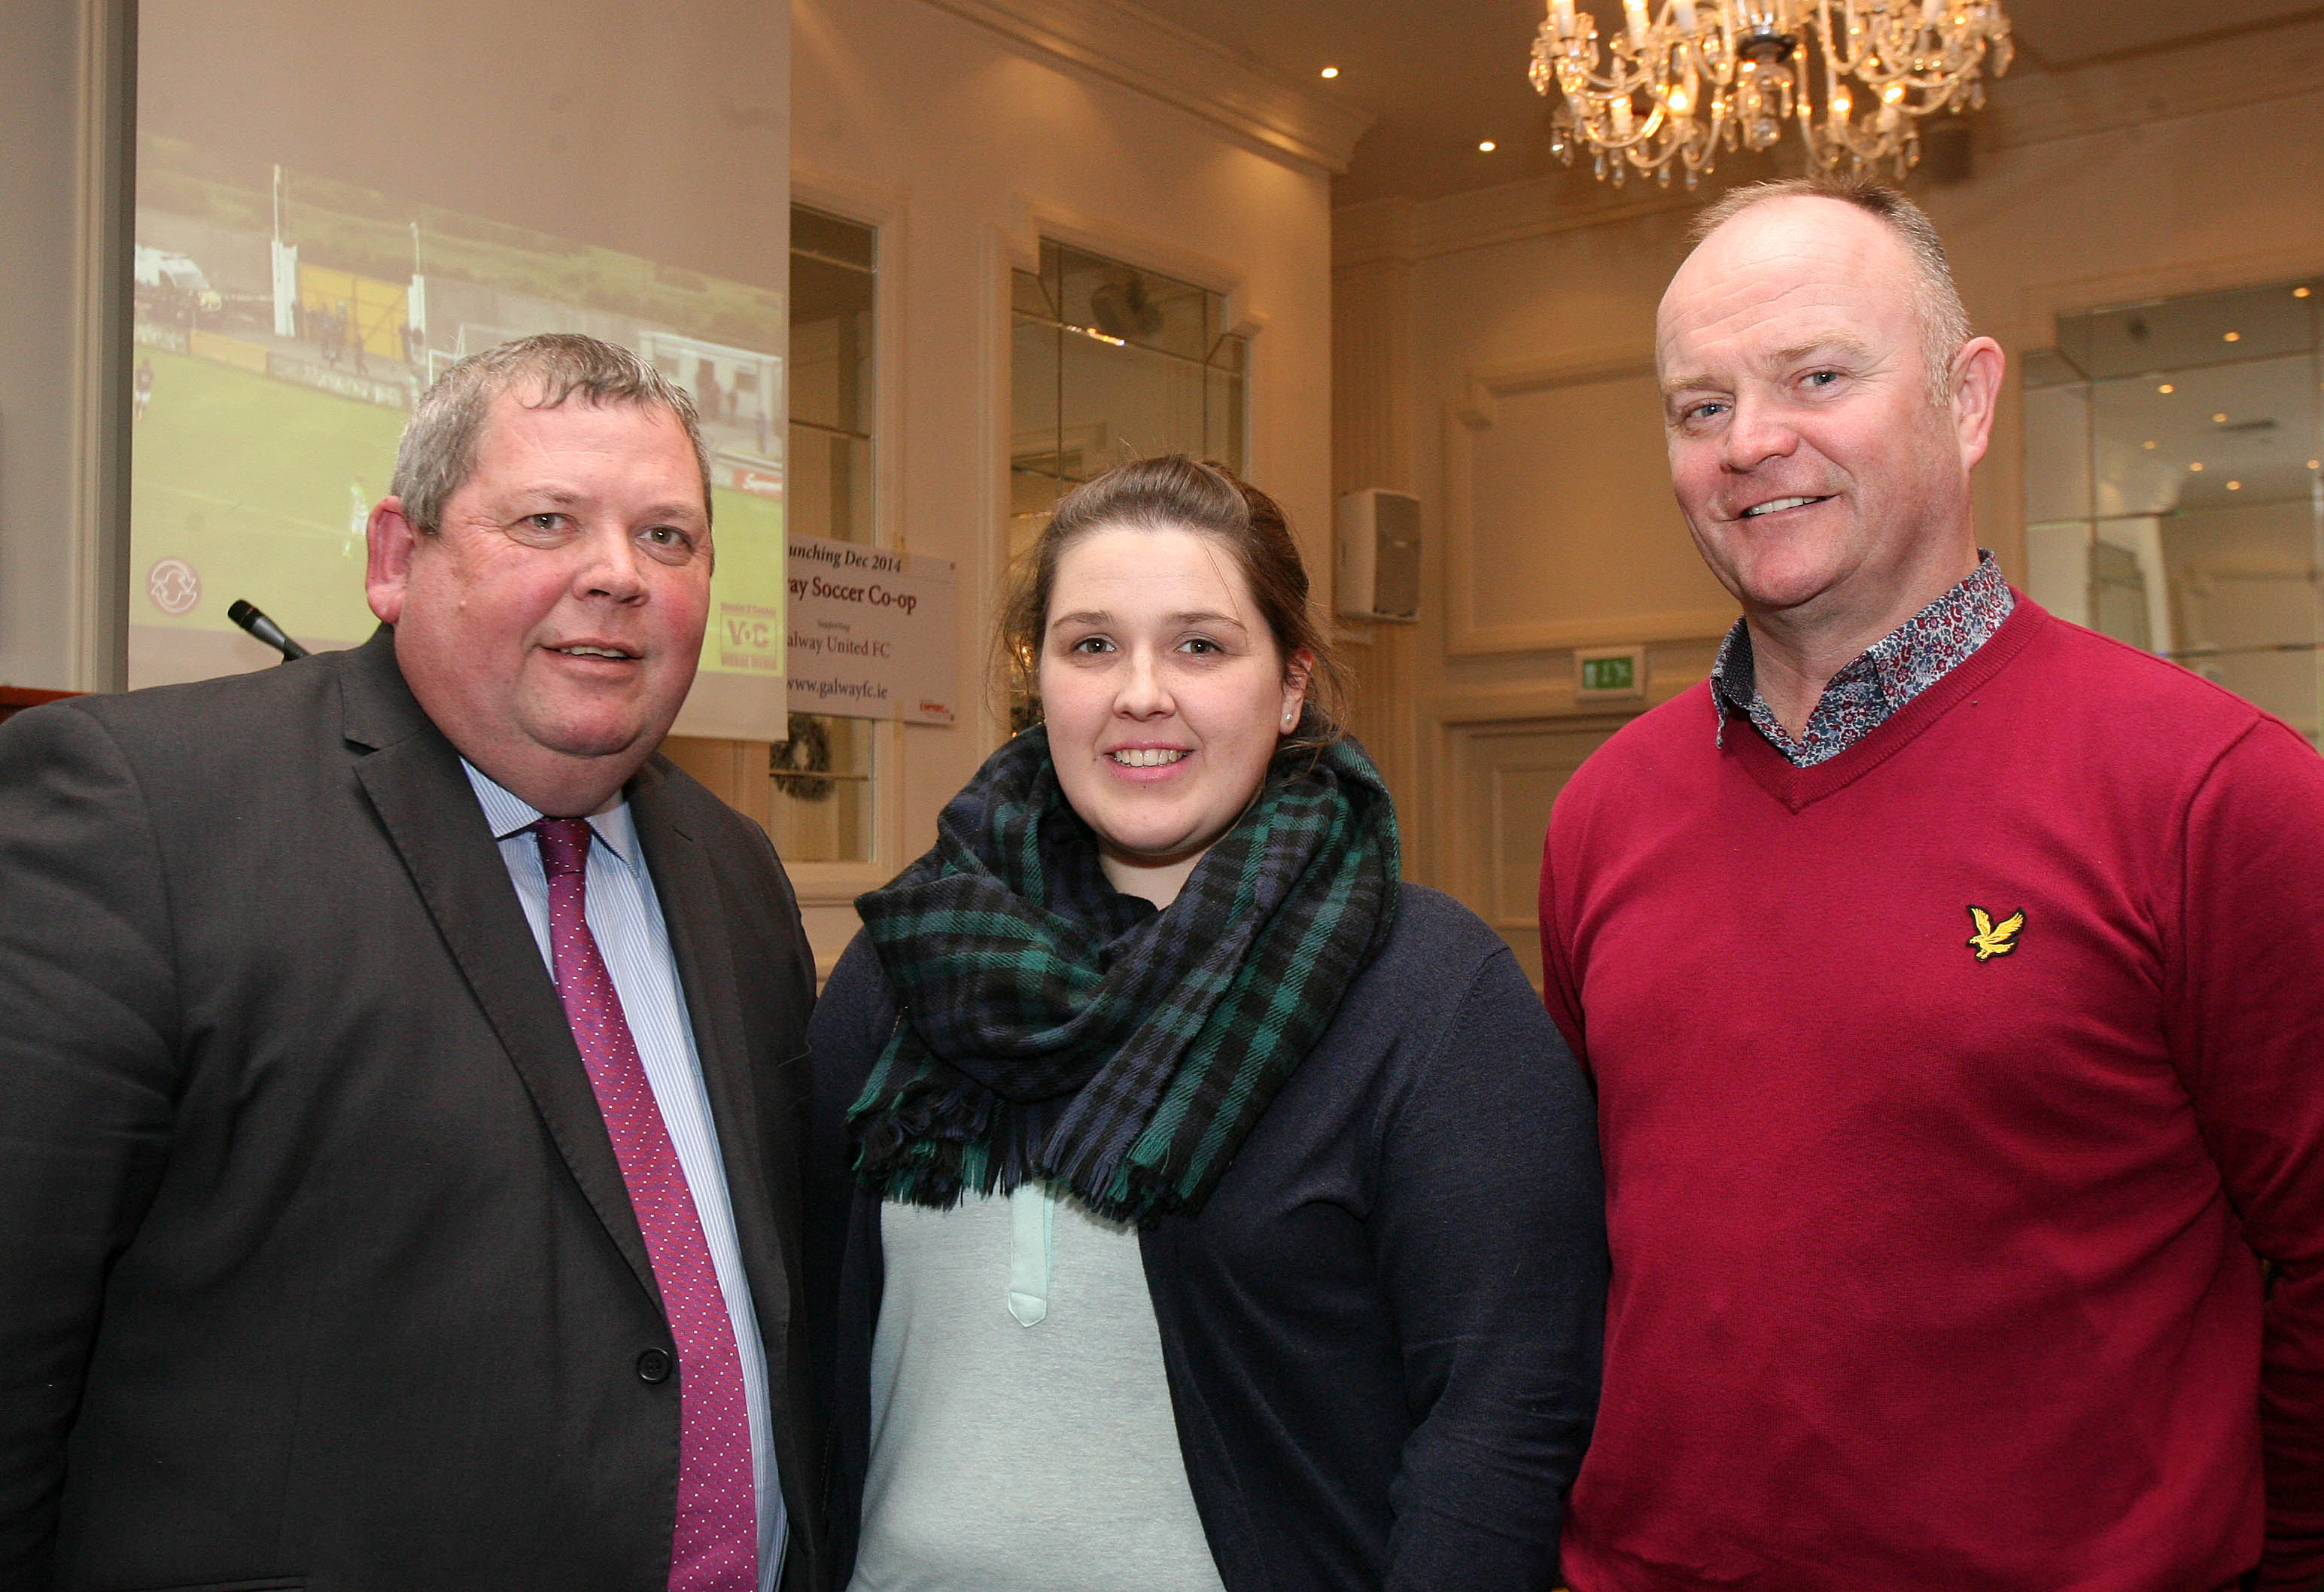 Eamonn and Lisa Naughton, Salthill, with Ricky O'Flaherty, soccer coach, at the launch of the Galway Soccer Co-op supporting Galway United at Hotel Meyrick.